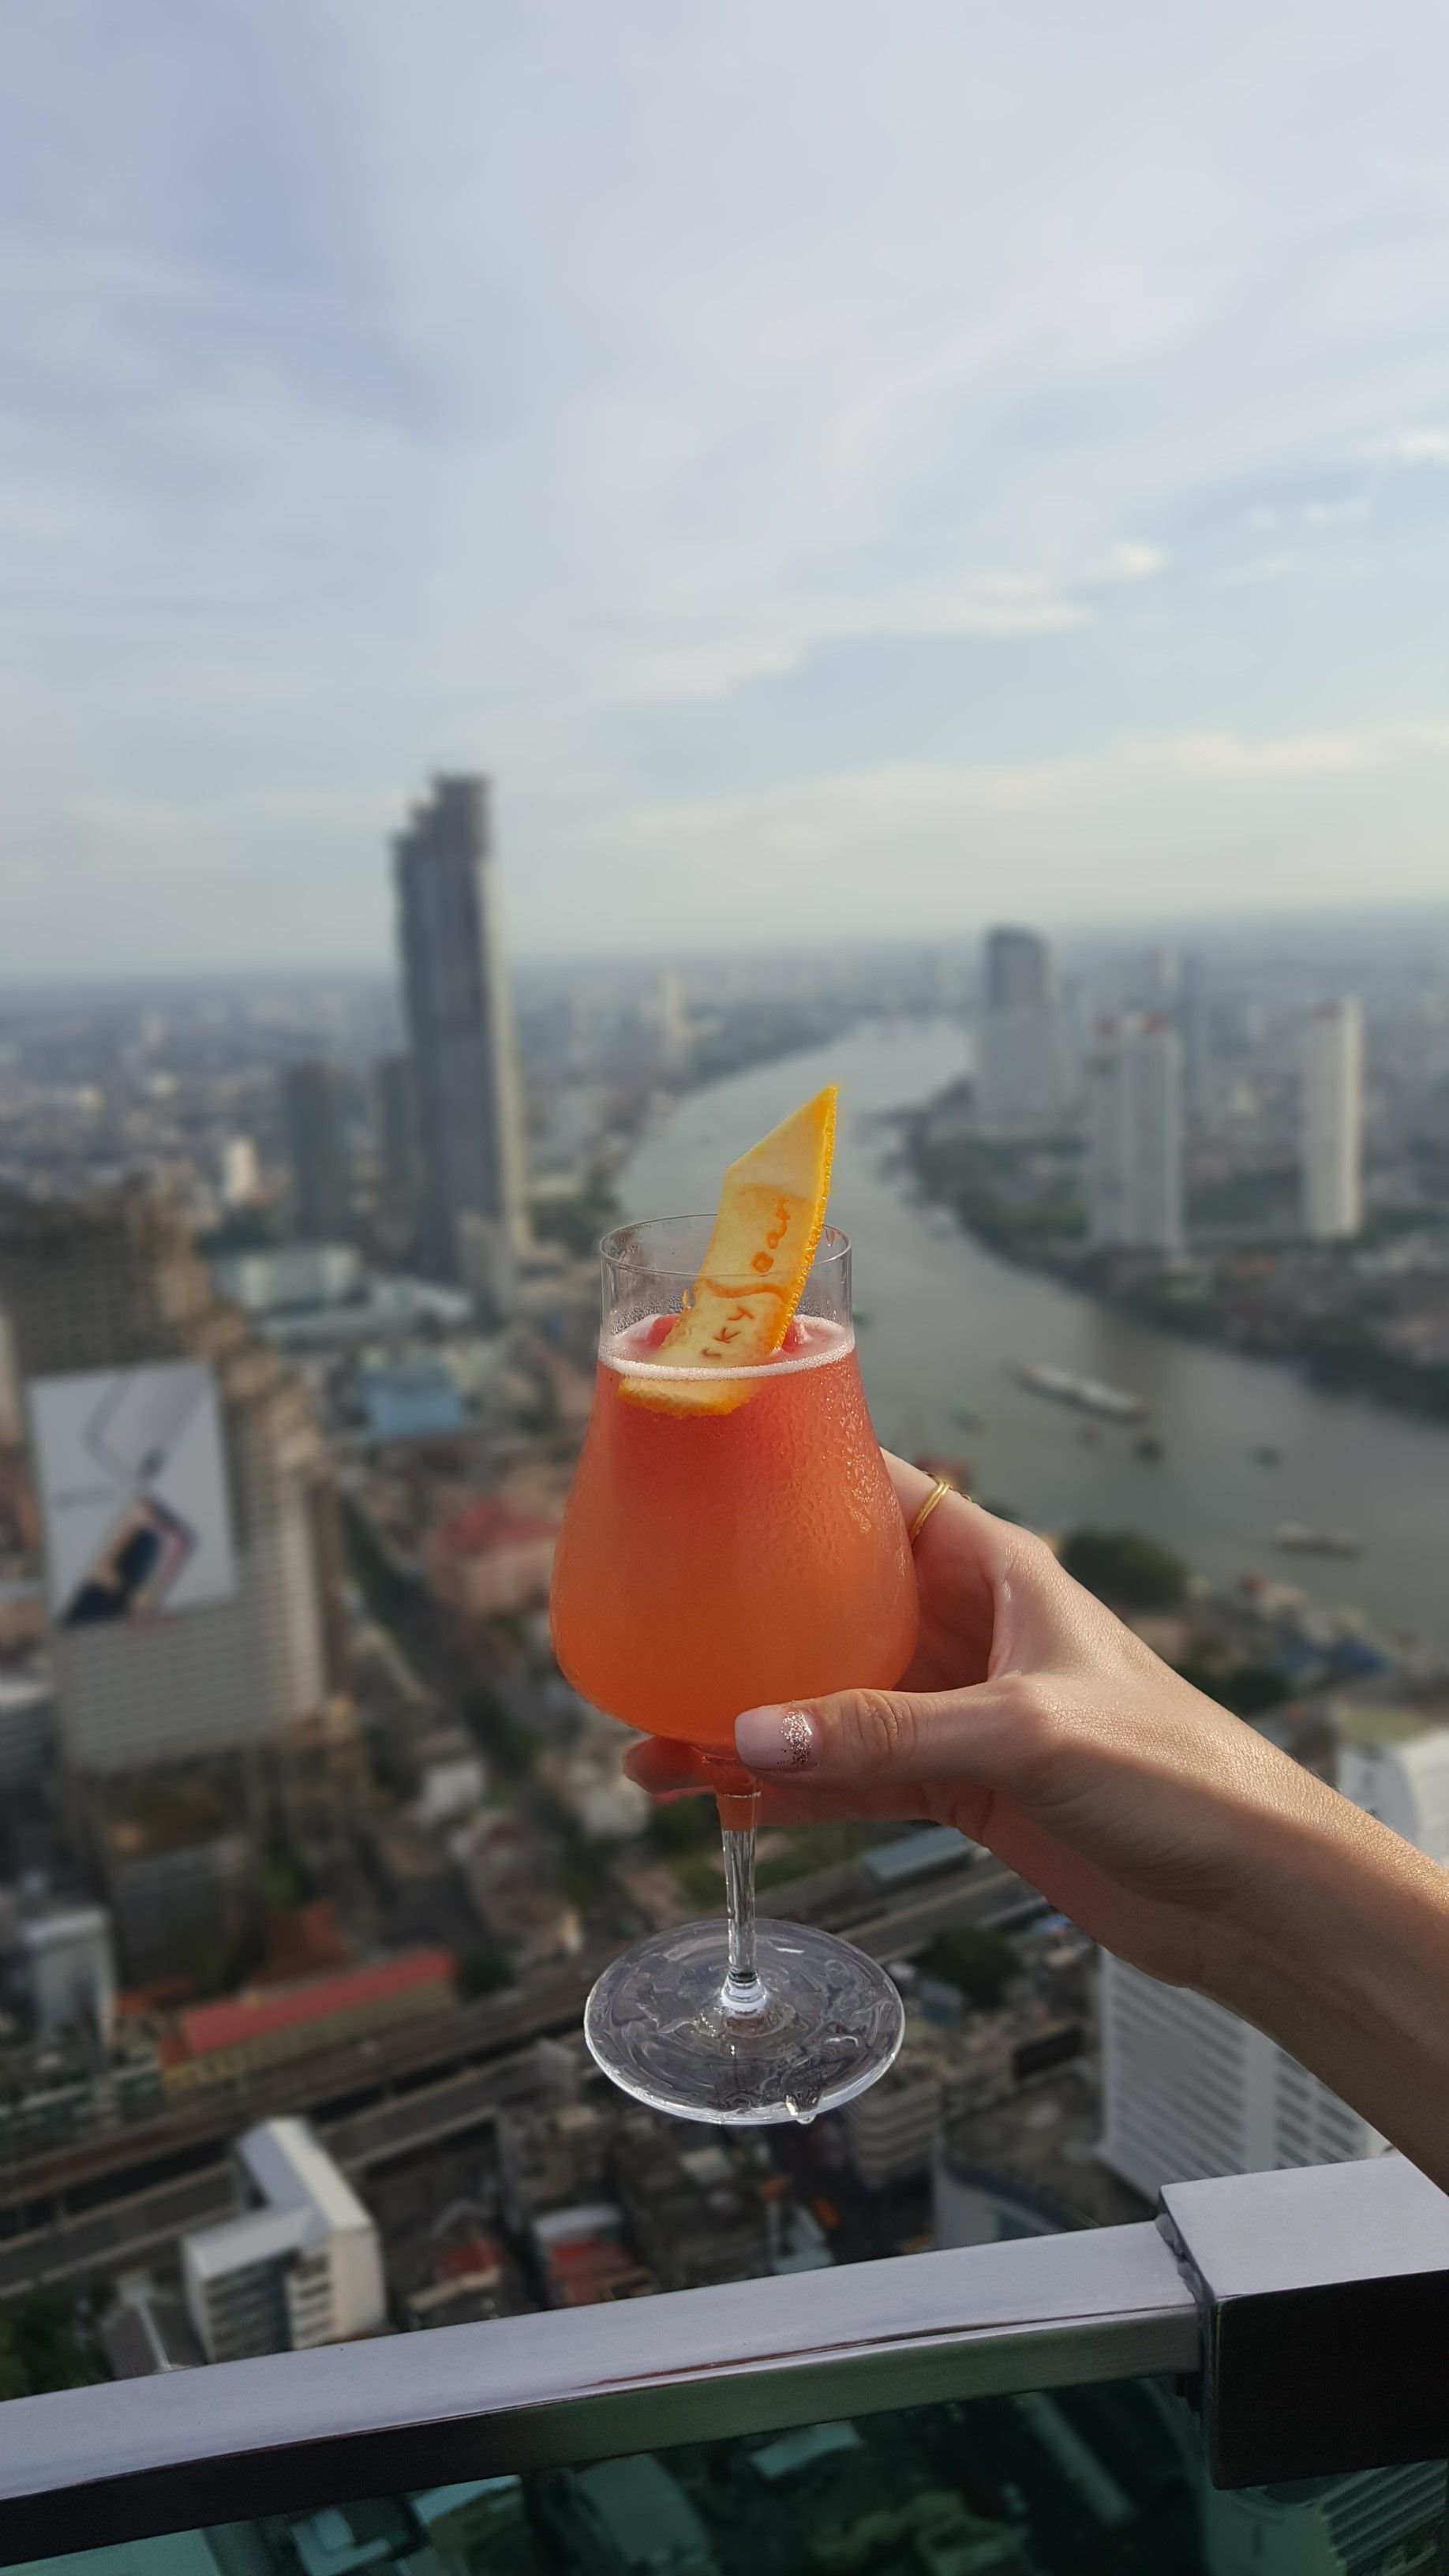 Cheers to the beginning of a delicious evening! | Sky bar ...